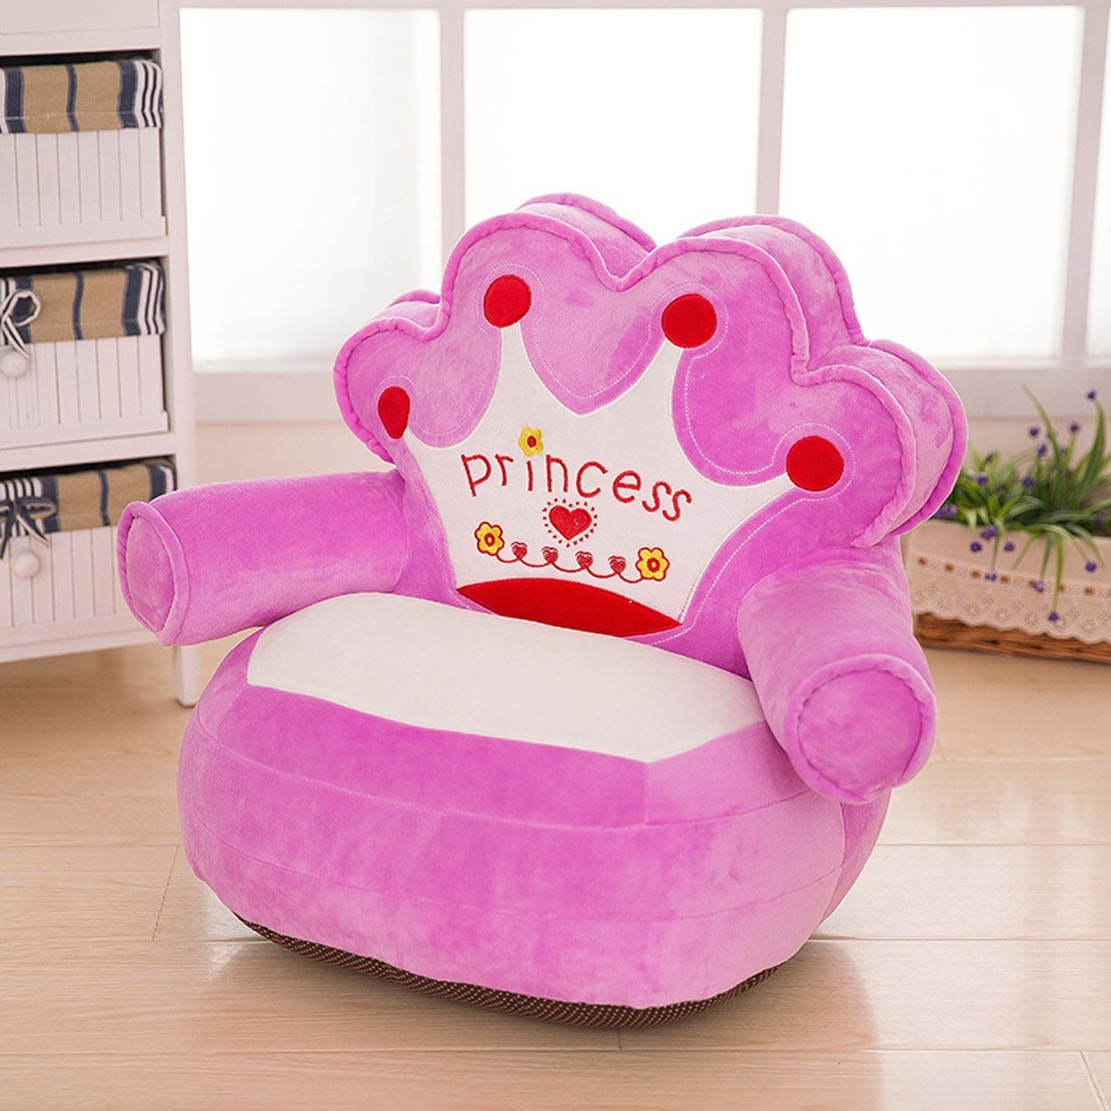 Let The One Year Old Girl Enjoy Courtesy Of Relaxing On To An Ultra Soft Plush Chair It Is Bright Pink In Color And Comes With Princess Written